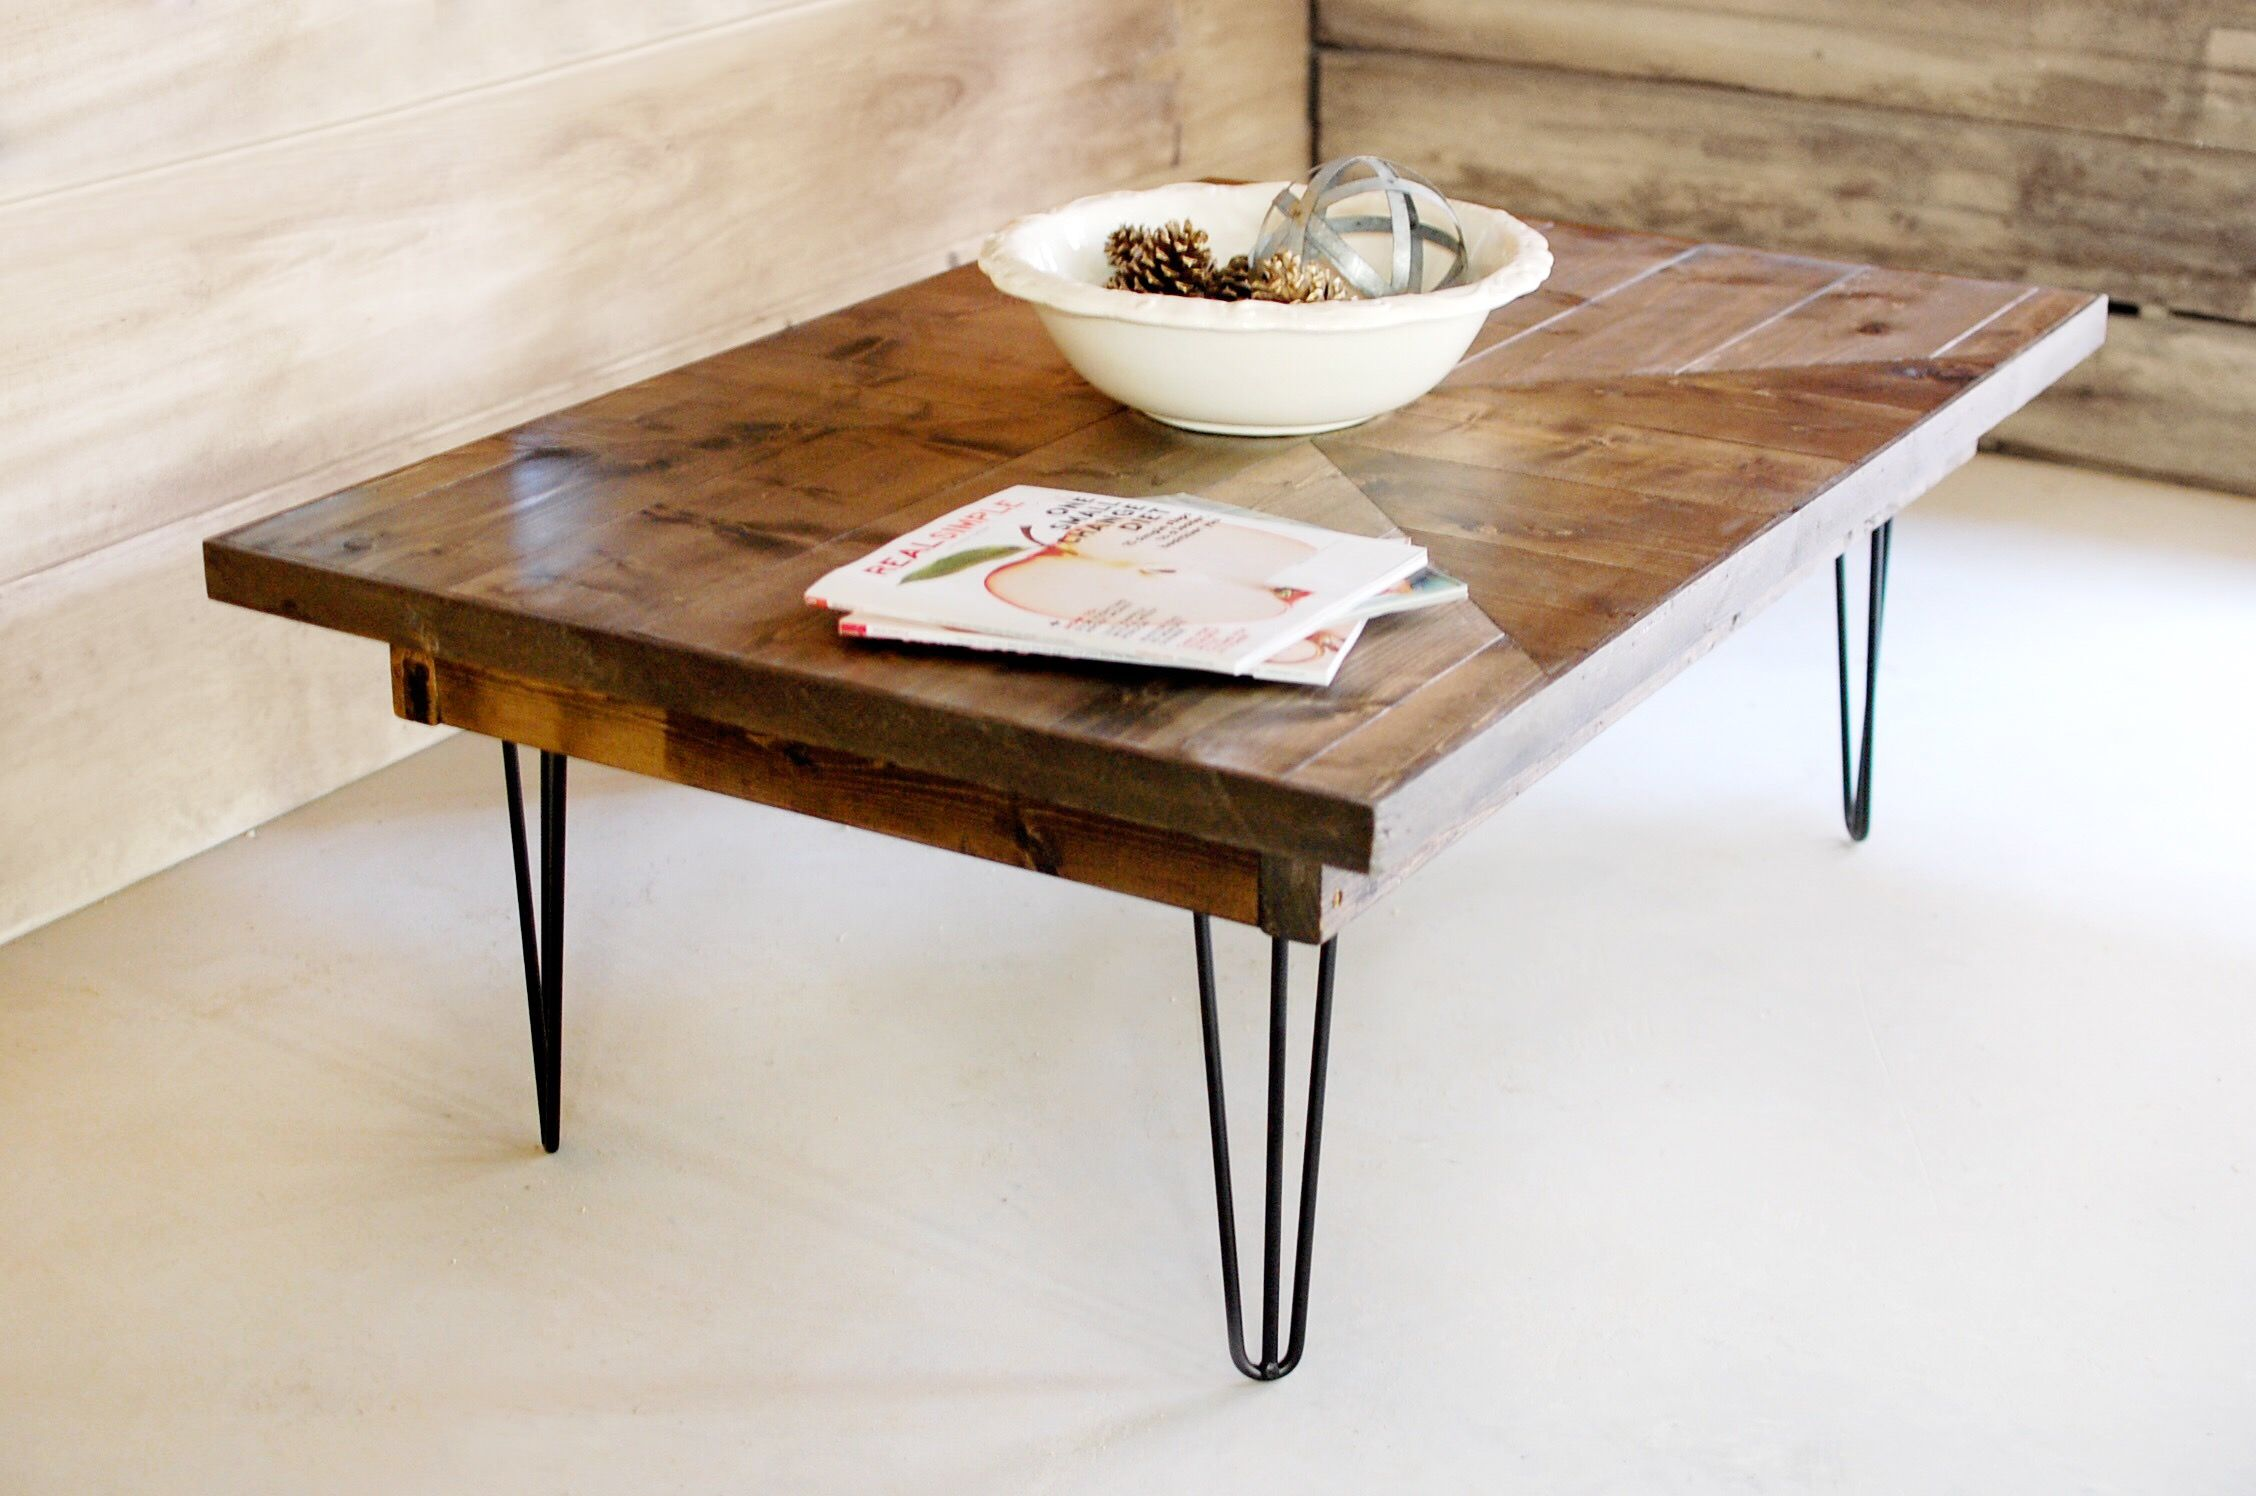 Hand Made Industrial Mid Century Modern Wood Coffee Table